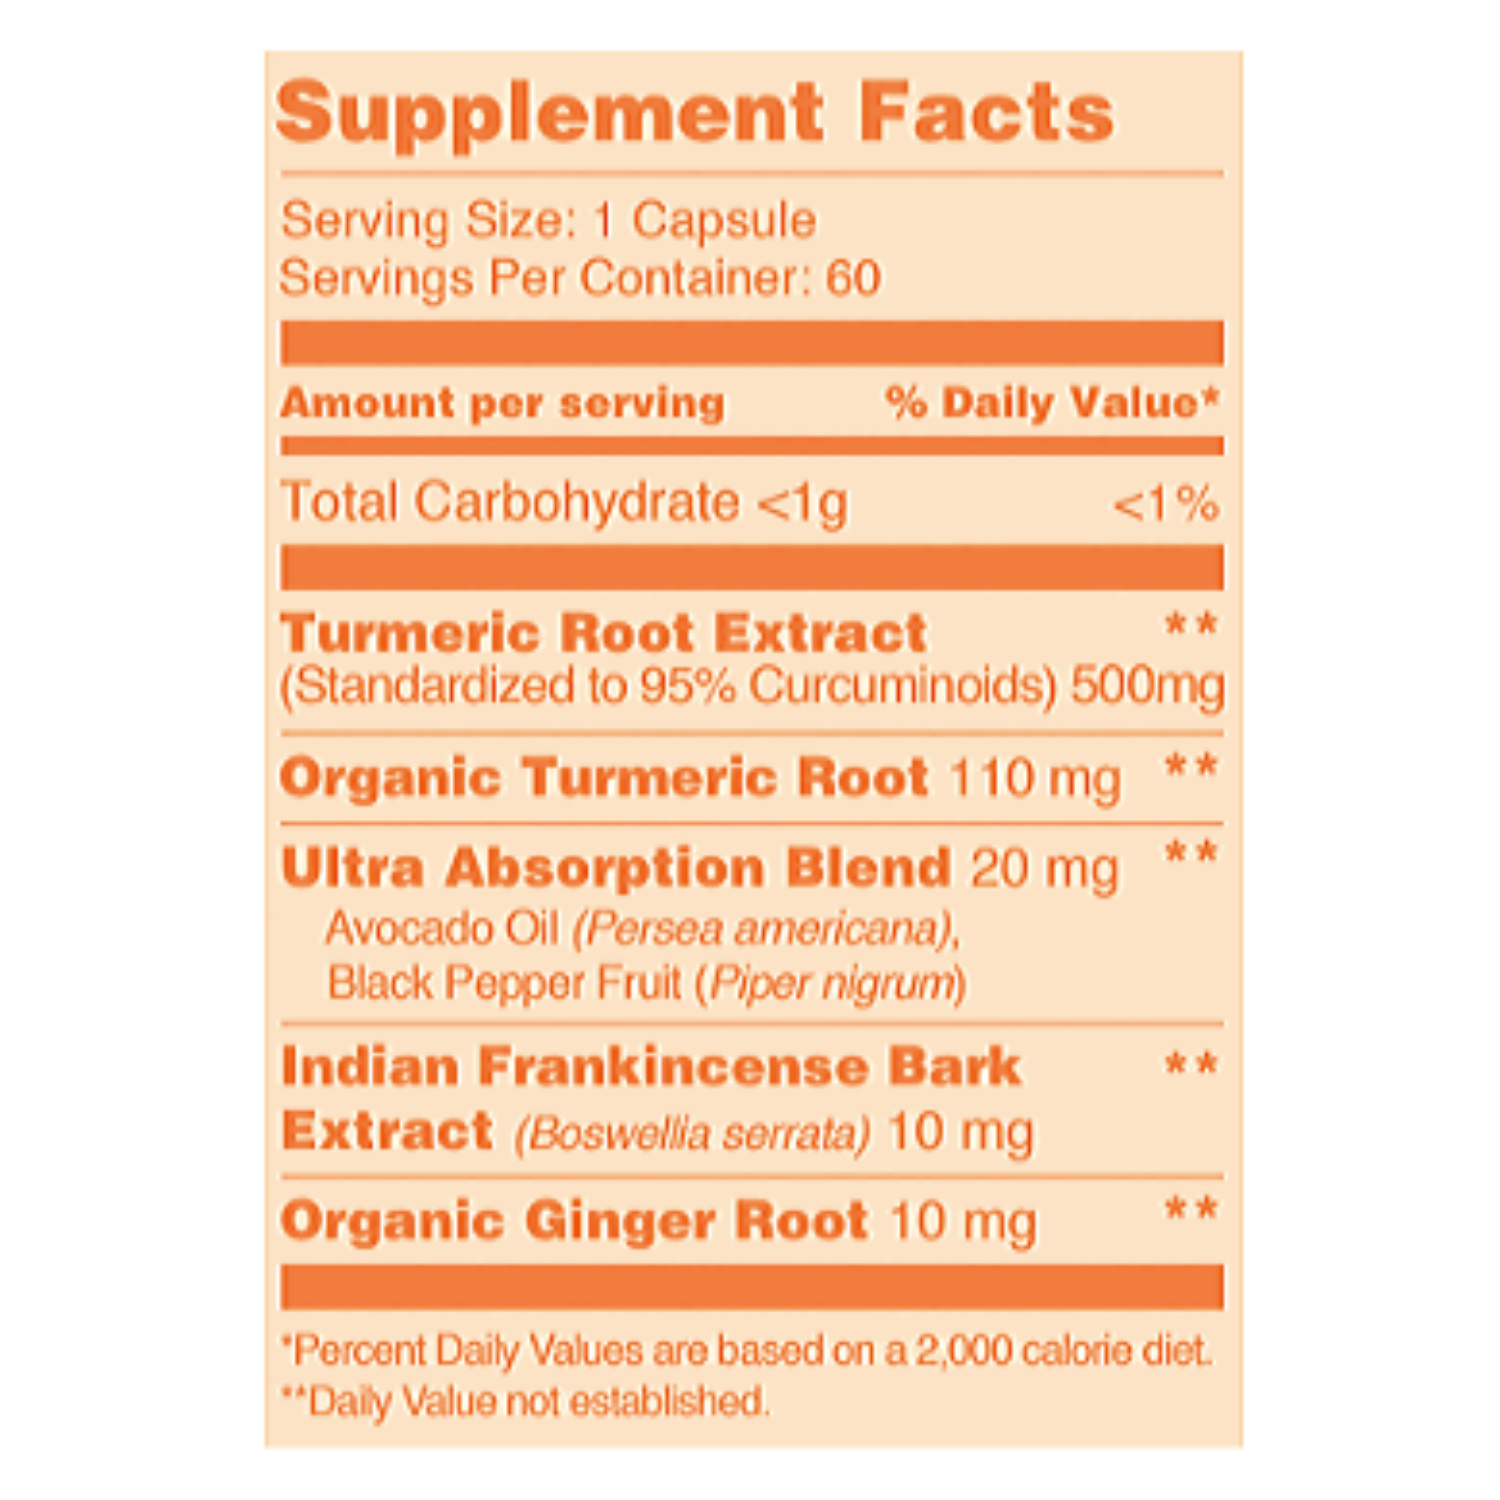 Premium Curcumin Turmeric Supplement Facts